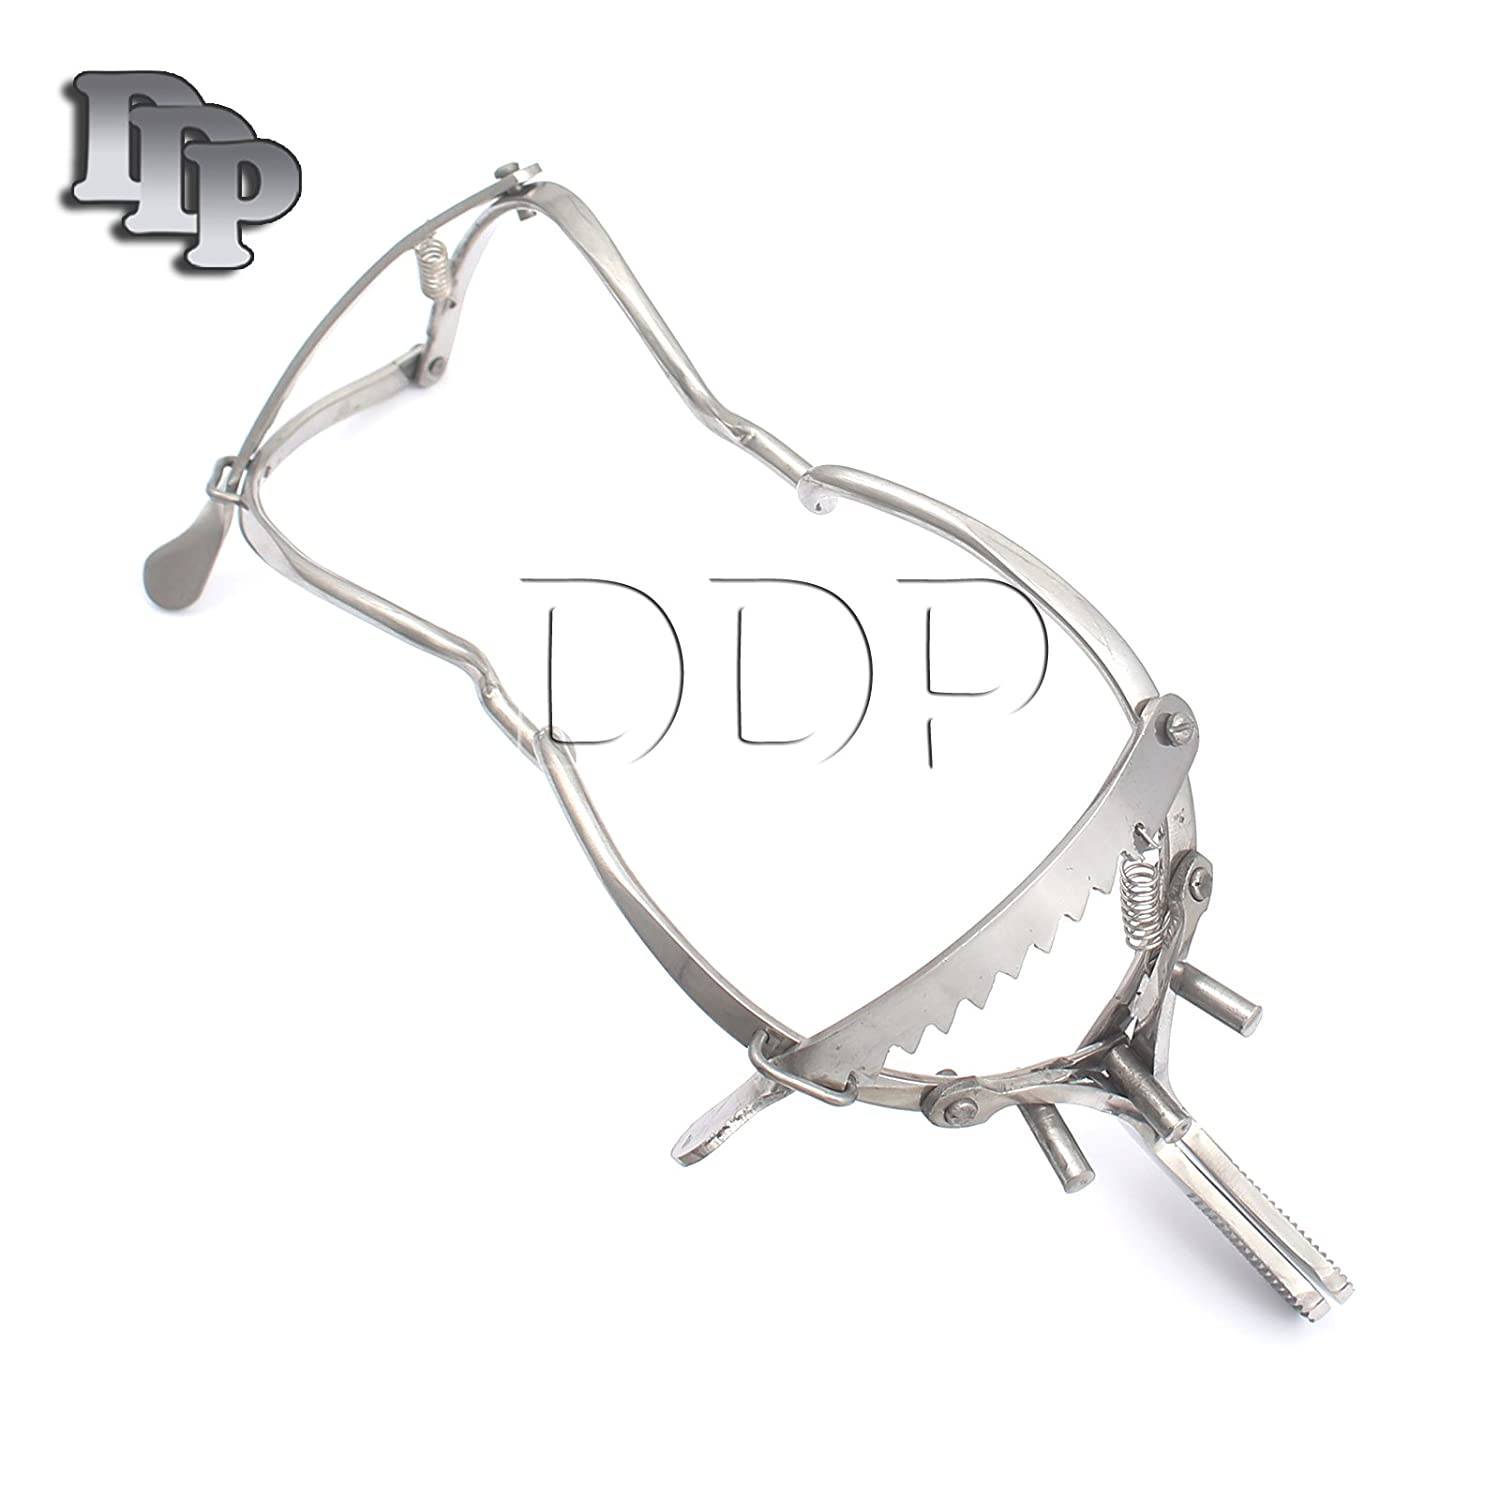 "DDP 4.5"" WHITEHEAD DENTAL MOUTH IMMOBILIZER GAG STAINLESS STEEL"